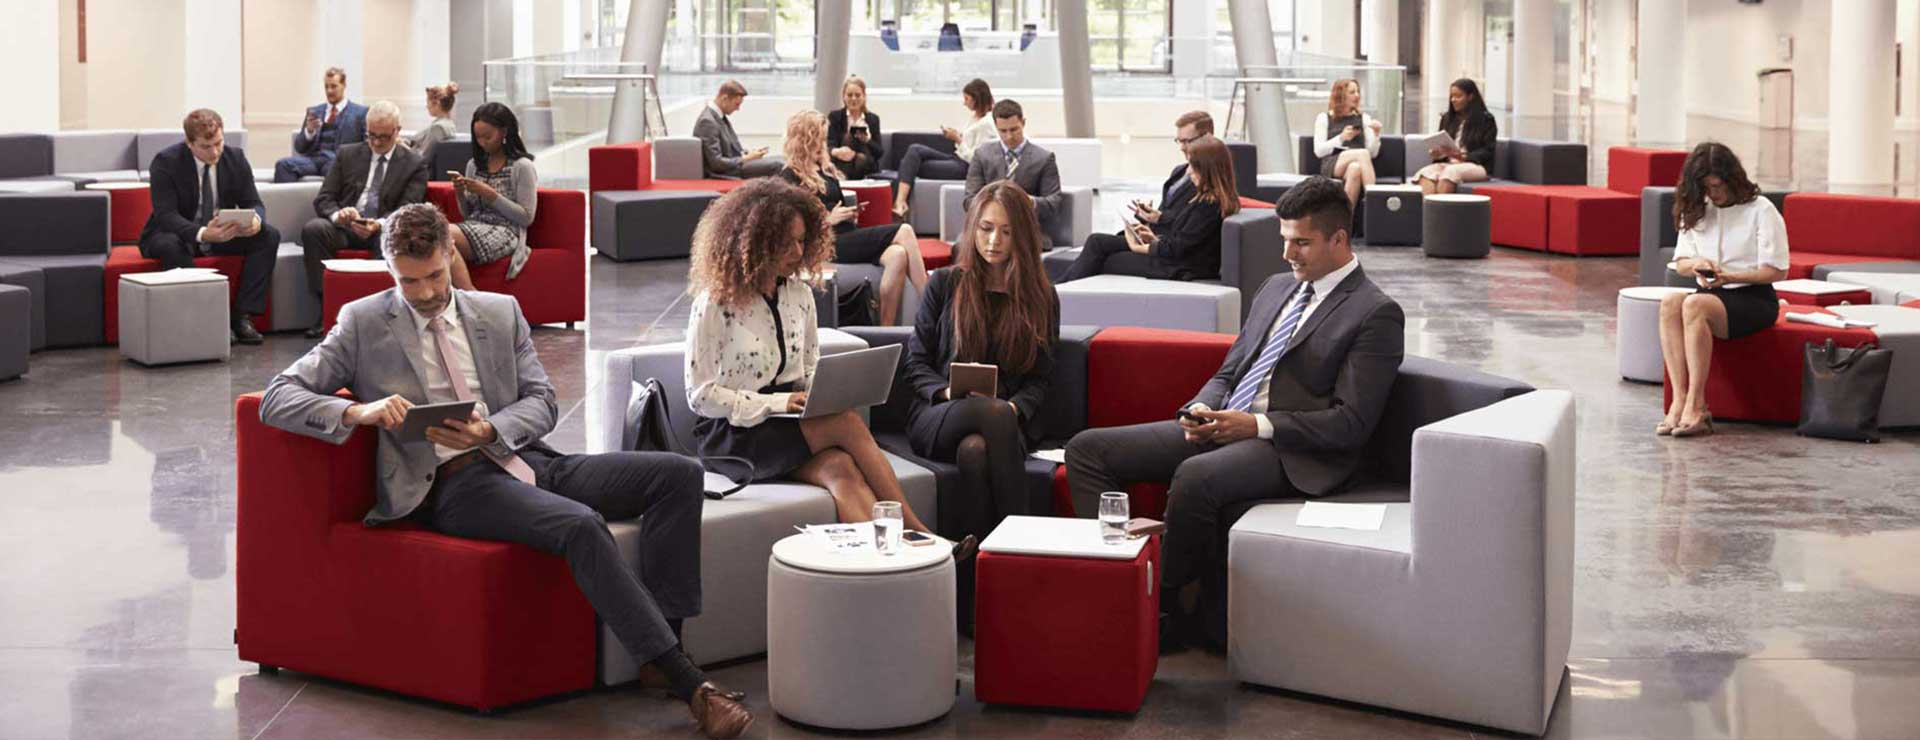 Business people sitting in a modern looking lobby